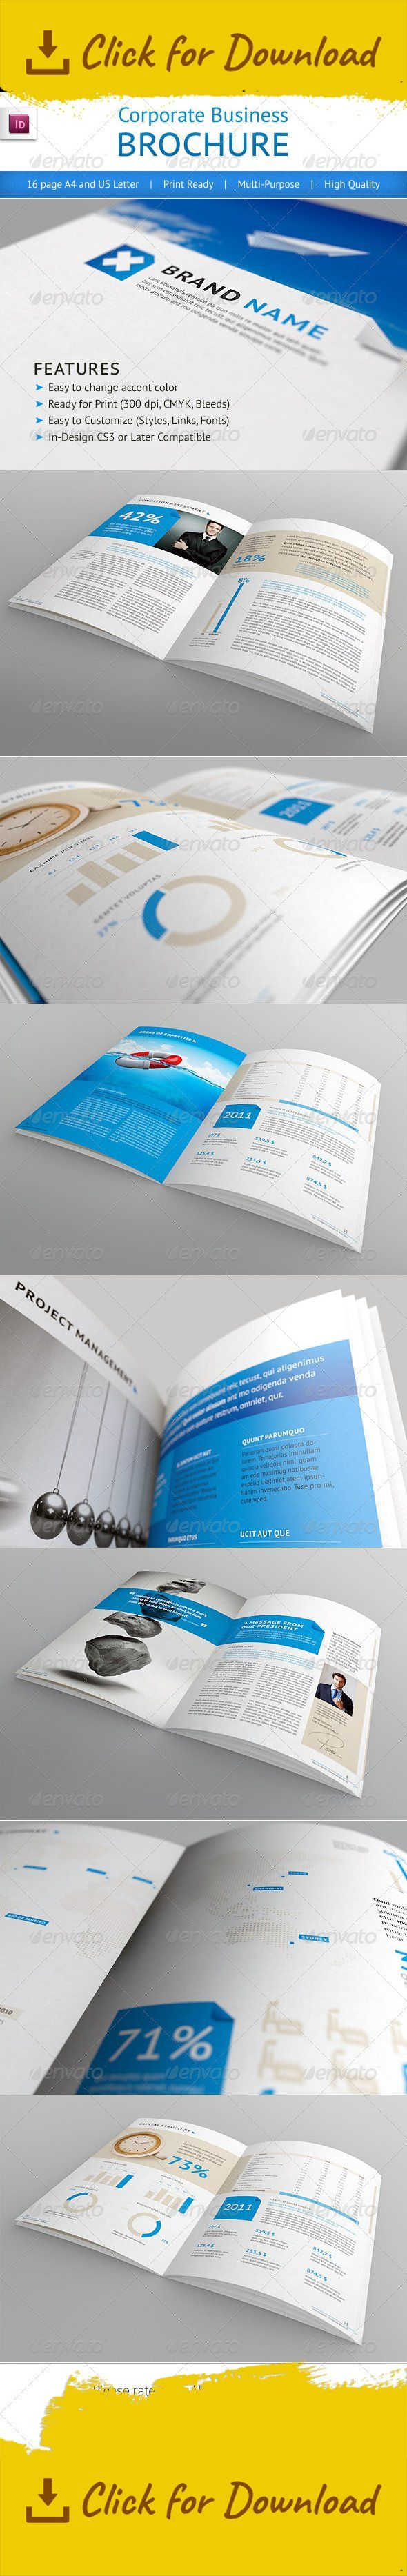 blue, booklet, brochure, business, clean, conceptual, corporate, designer, flexible, identity, indesign template, light, modern, print, print ready, professional, simple, template This is a 16 page professional In-Design brochure perfect for corporate business that needs clean, professional, modern brochure template design.   	Easy to edit, you can change Blue accent color throughout the whole document at once, paragraph and character styles included, text and images placed on separate laye...